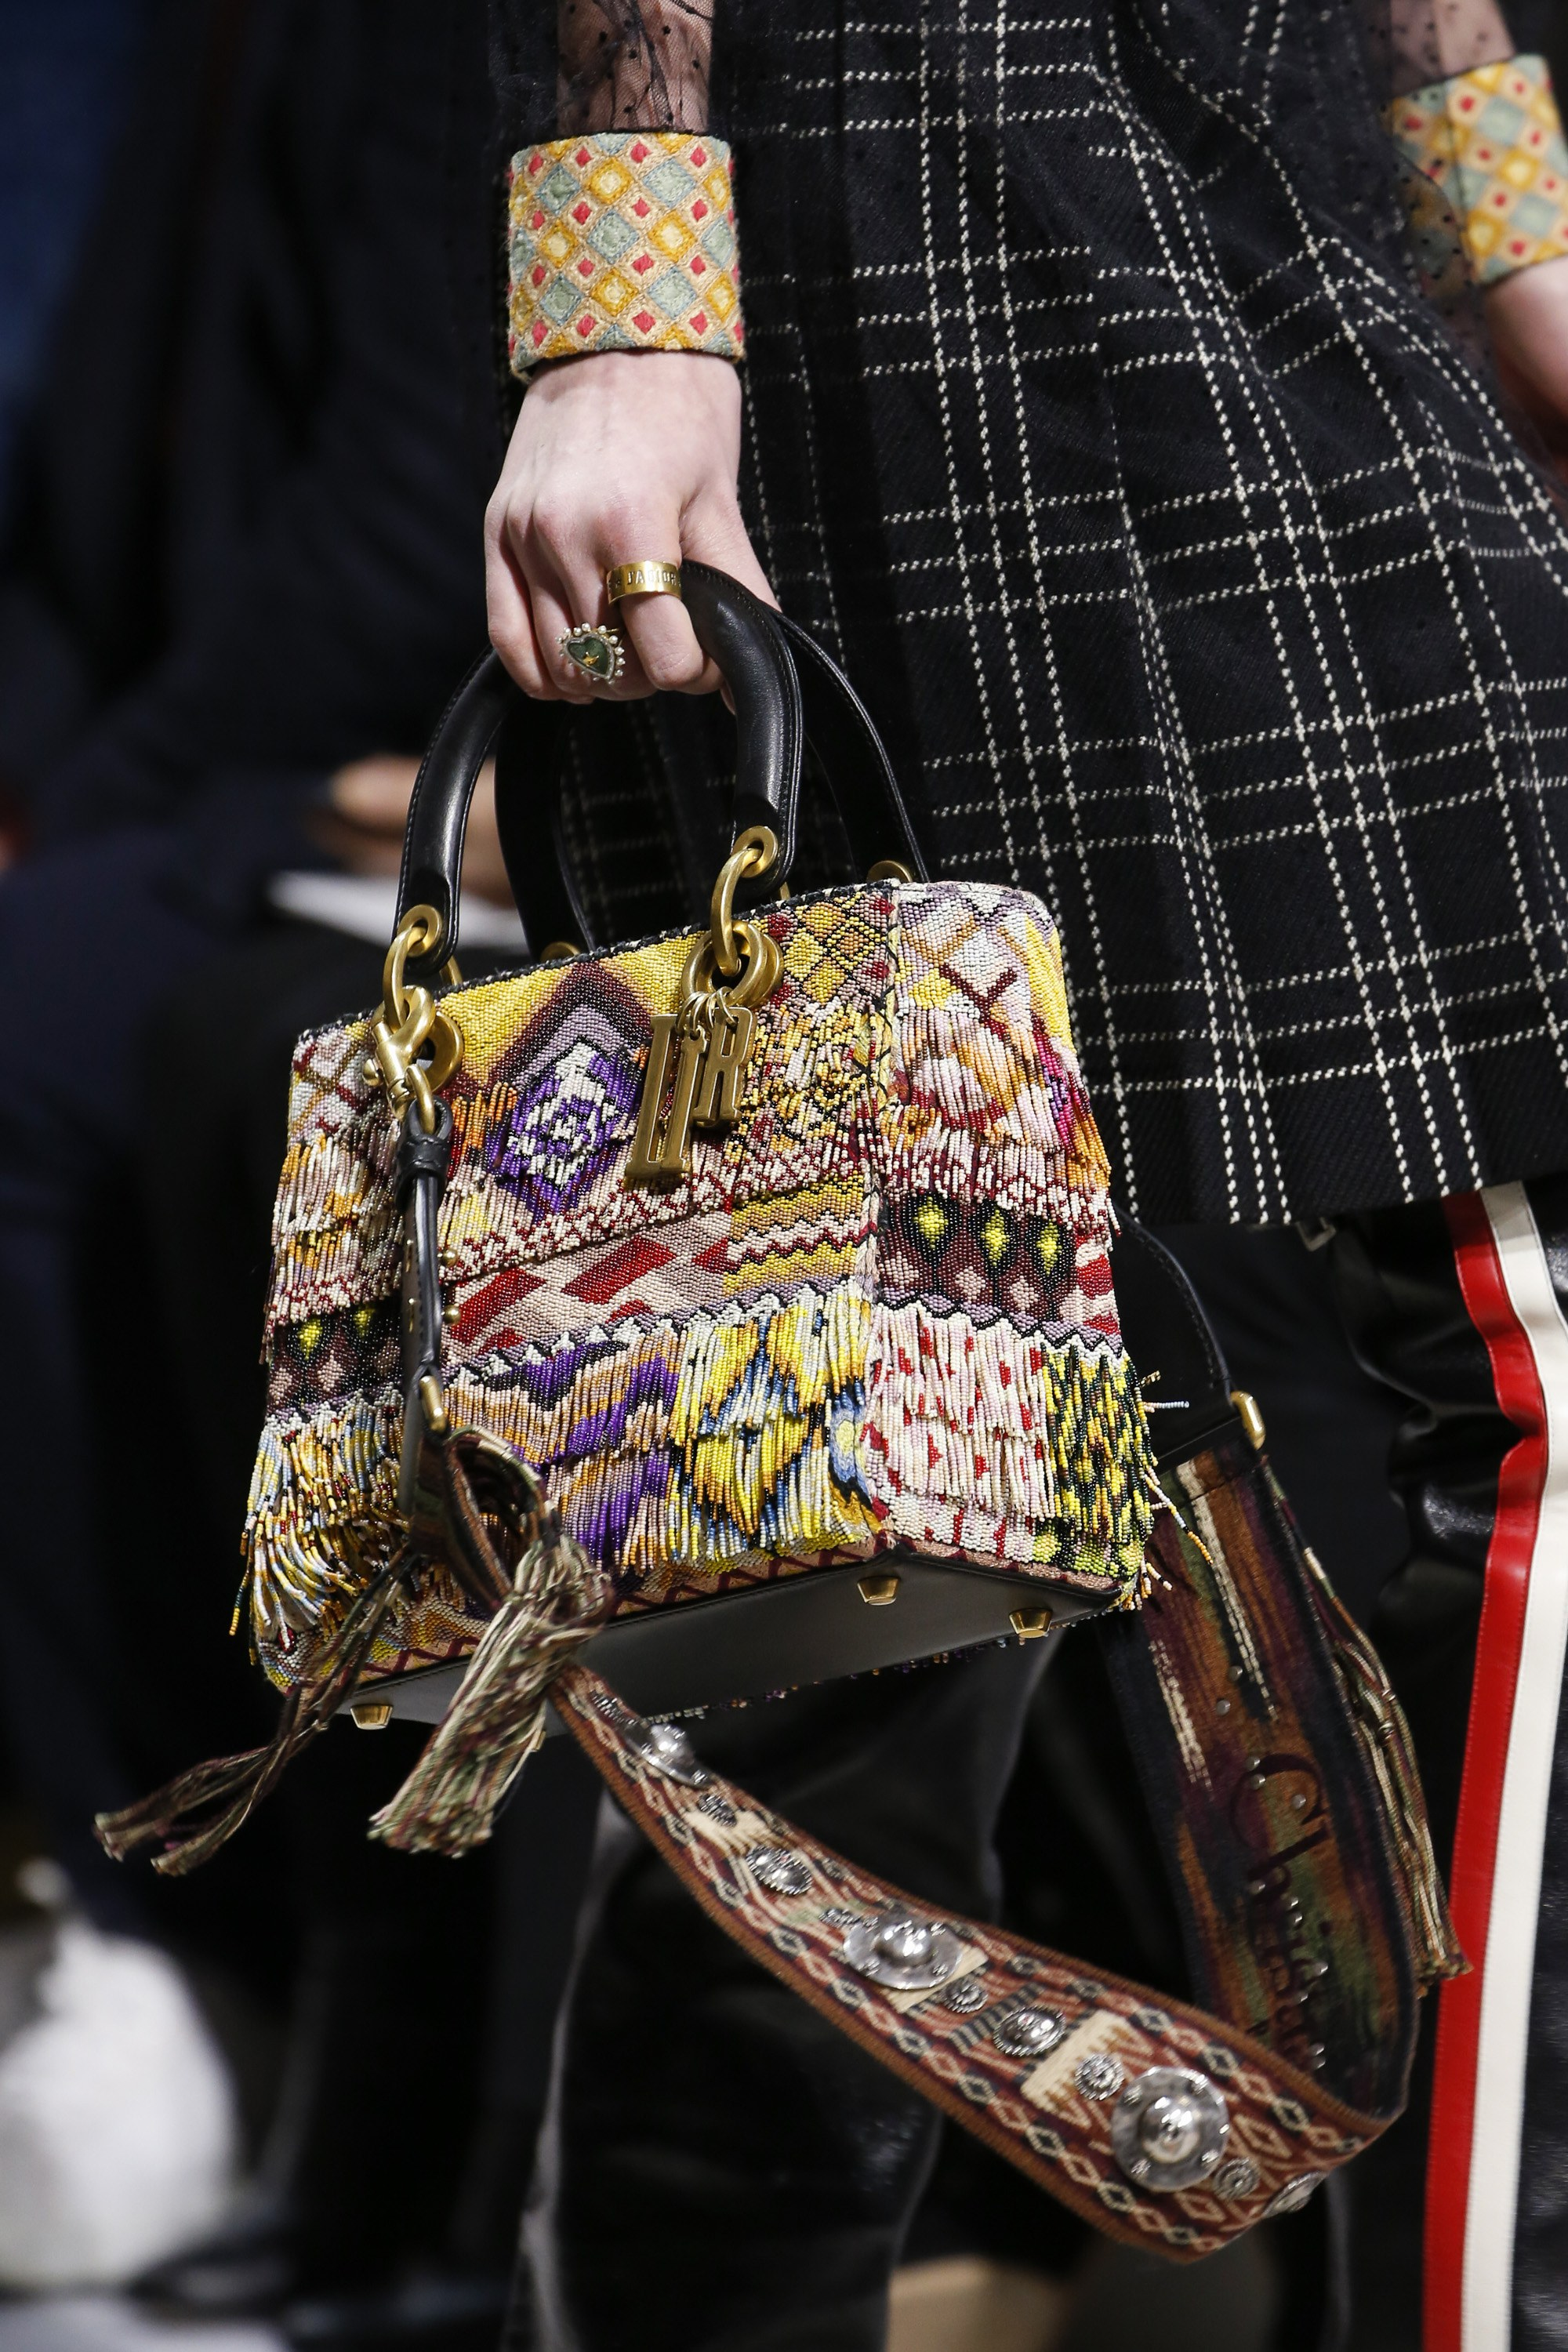 dior fallwinter 2018 runway bag collection featuring